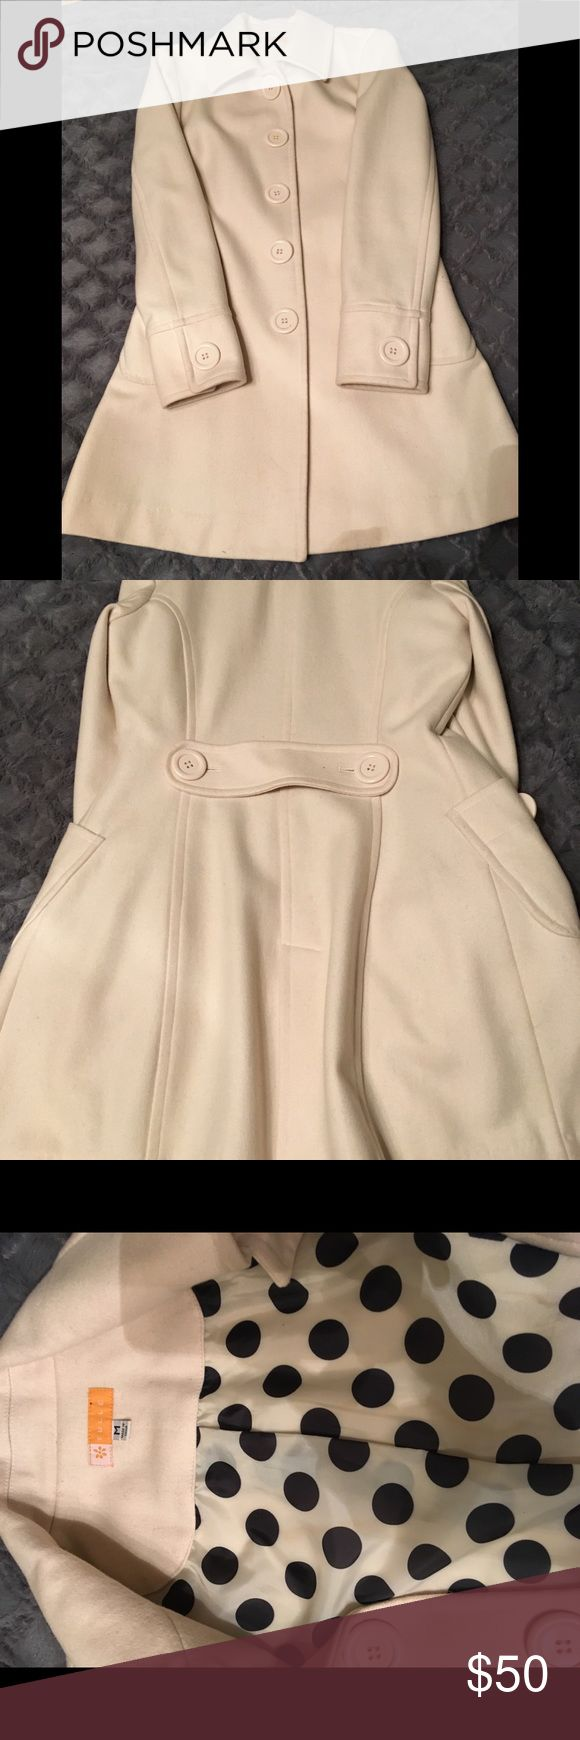 Tulle cream long dress coat size M Tulle cream long dress coat size M five button closure. Shell 60% wool 40% viscose Lining 100% polyester Machine Wash Cold or dry clean. Tulle Jackets & Coats Pea Coats